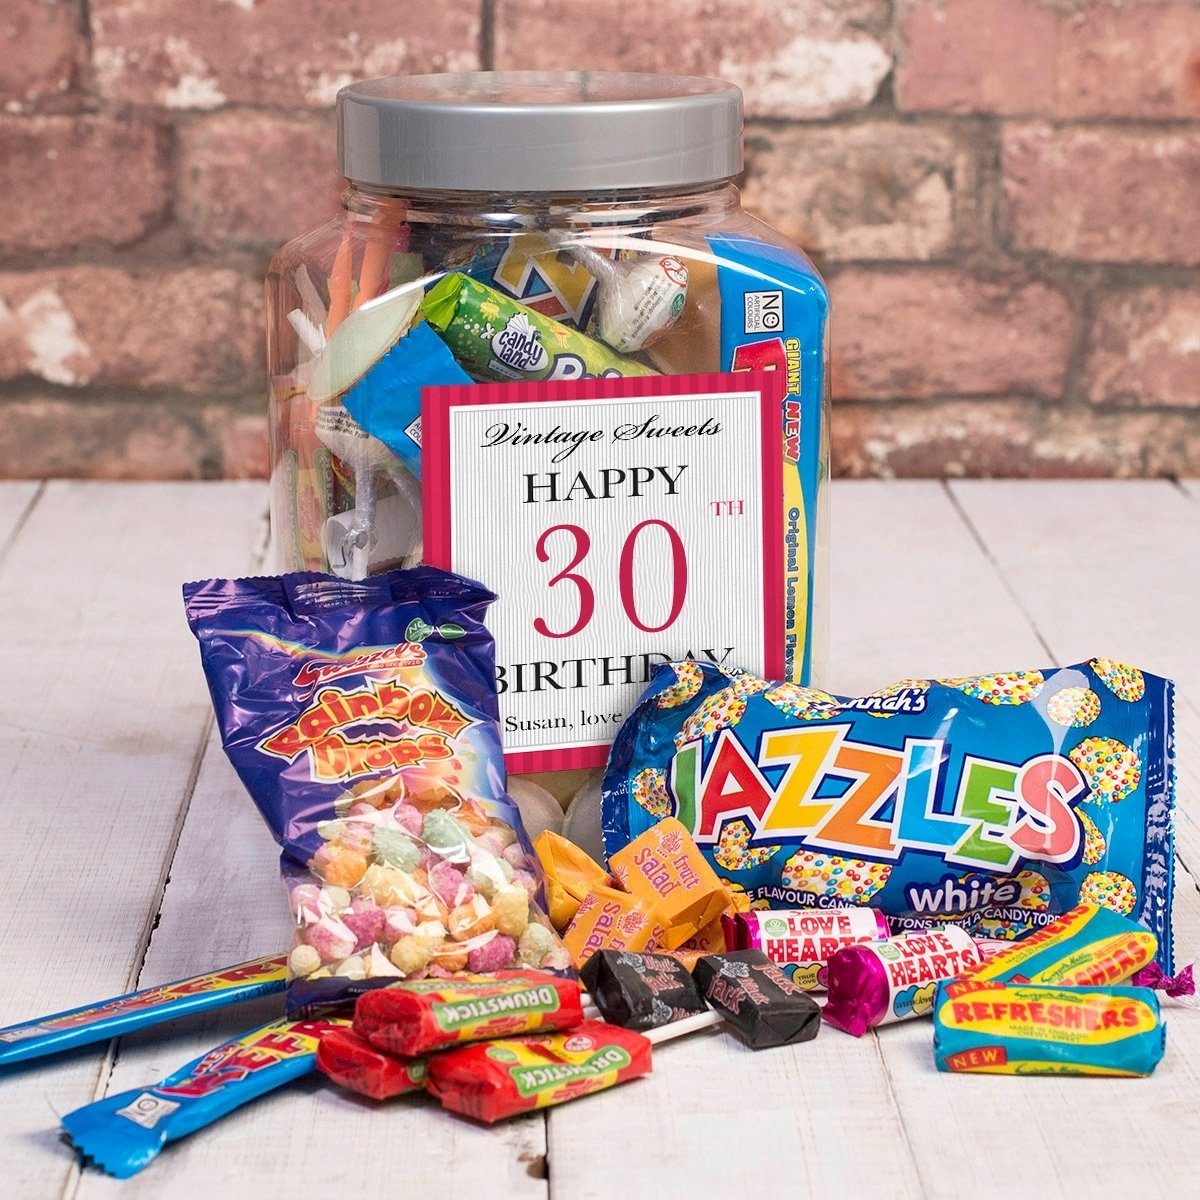 10 Trendy Birthday Delivery Ideas For Her 30th Gifts Gettingpersonal Co Uk 3